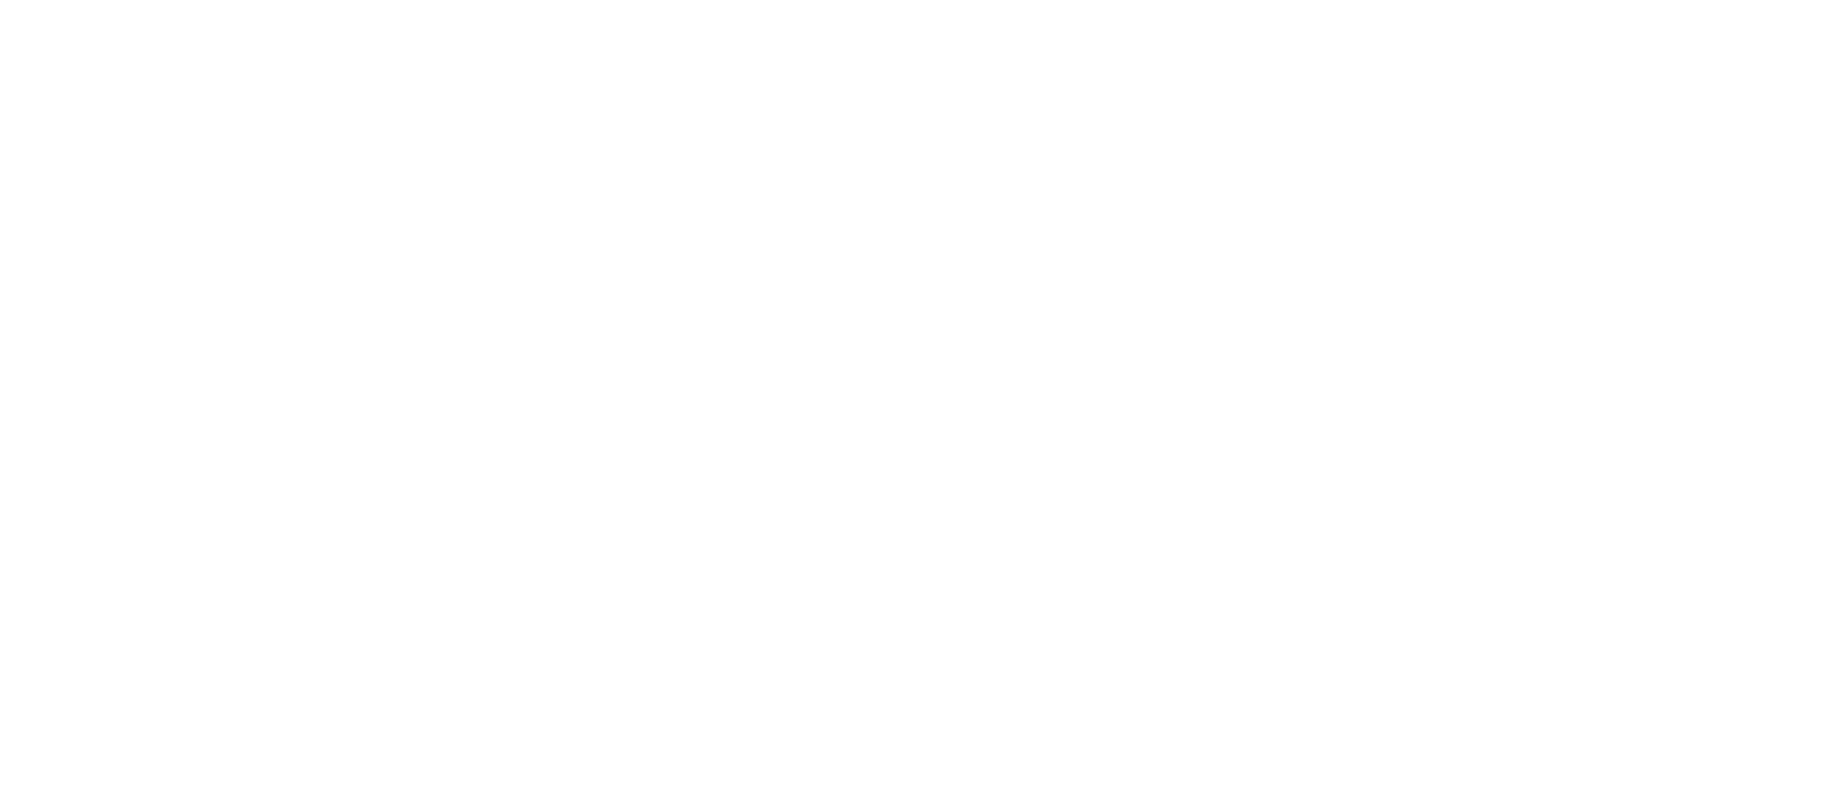 Foothills Alliance Church